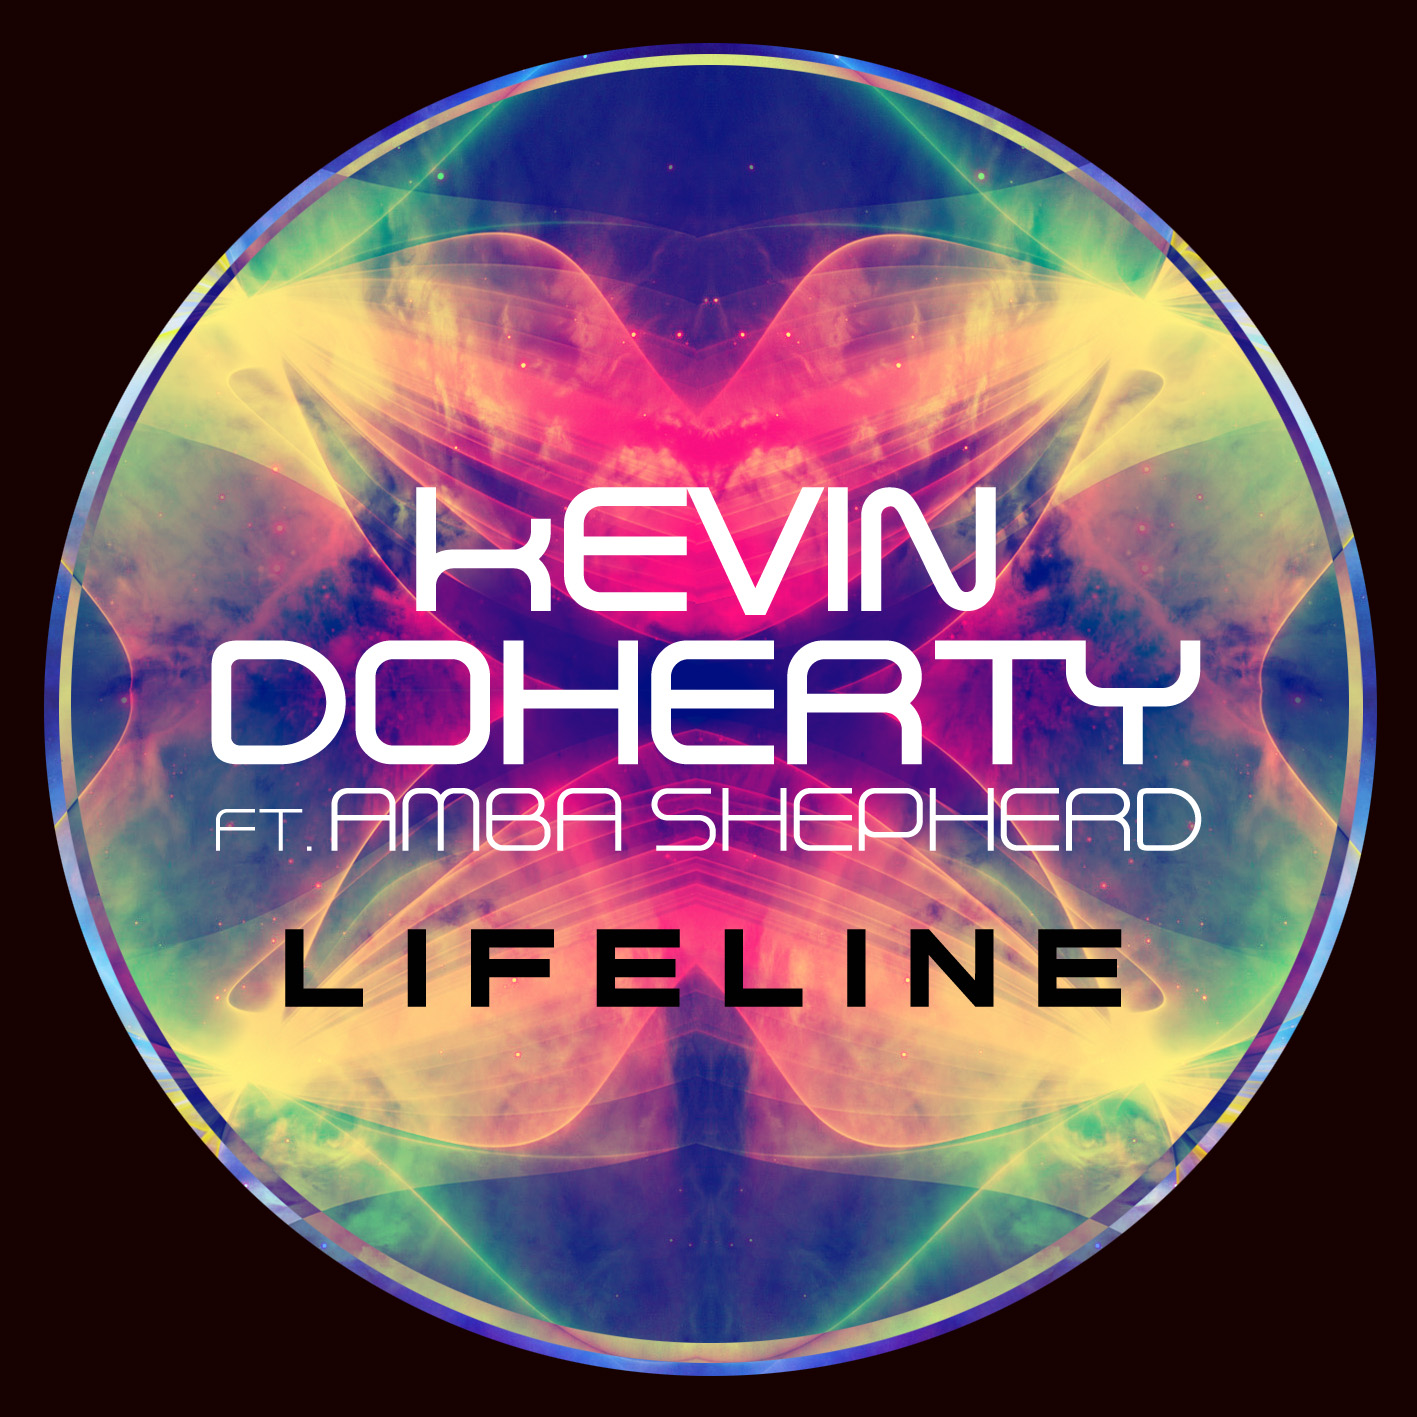 Kevin Doherty feat. Amba Shepherd – Lifeline (Radio Edit)